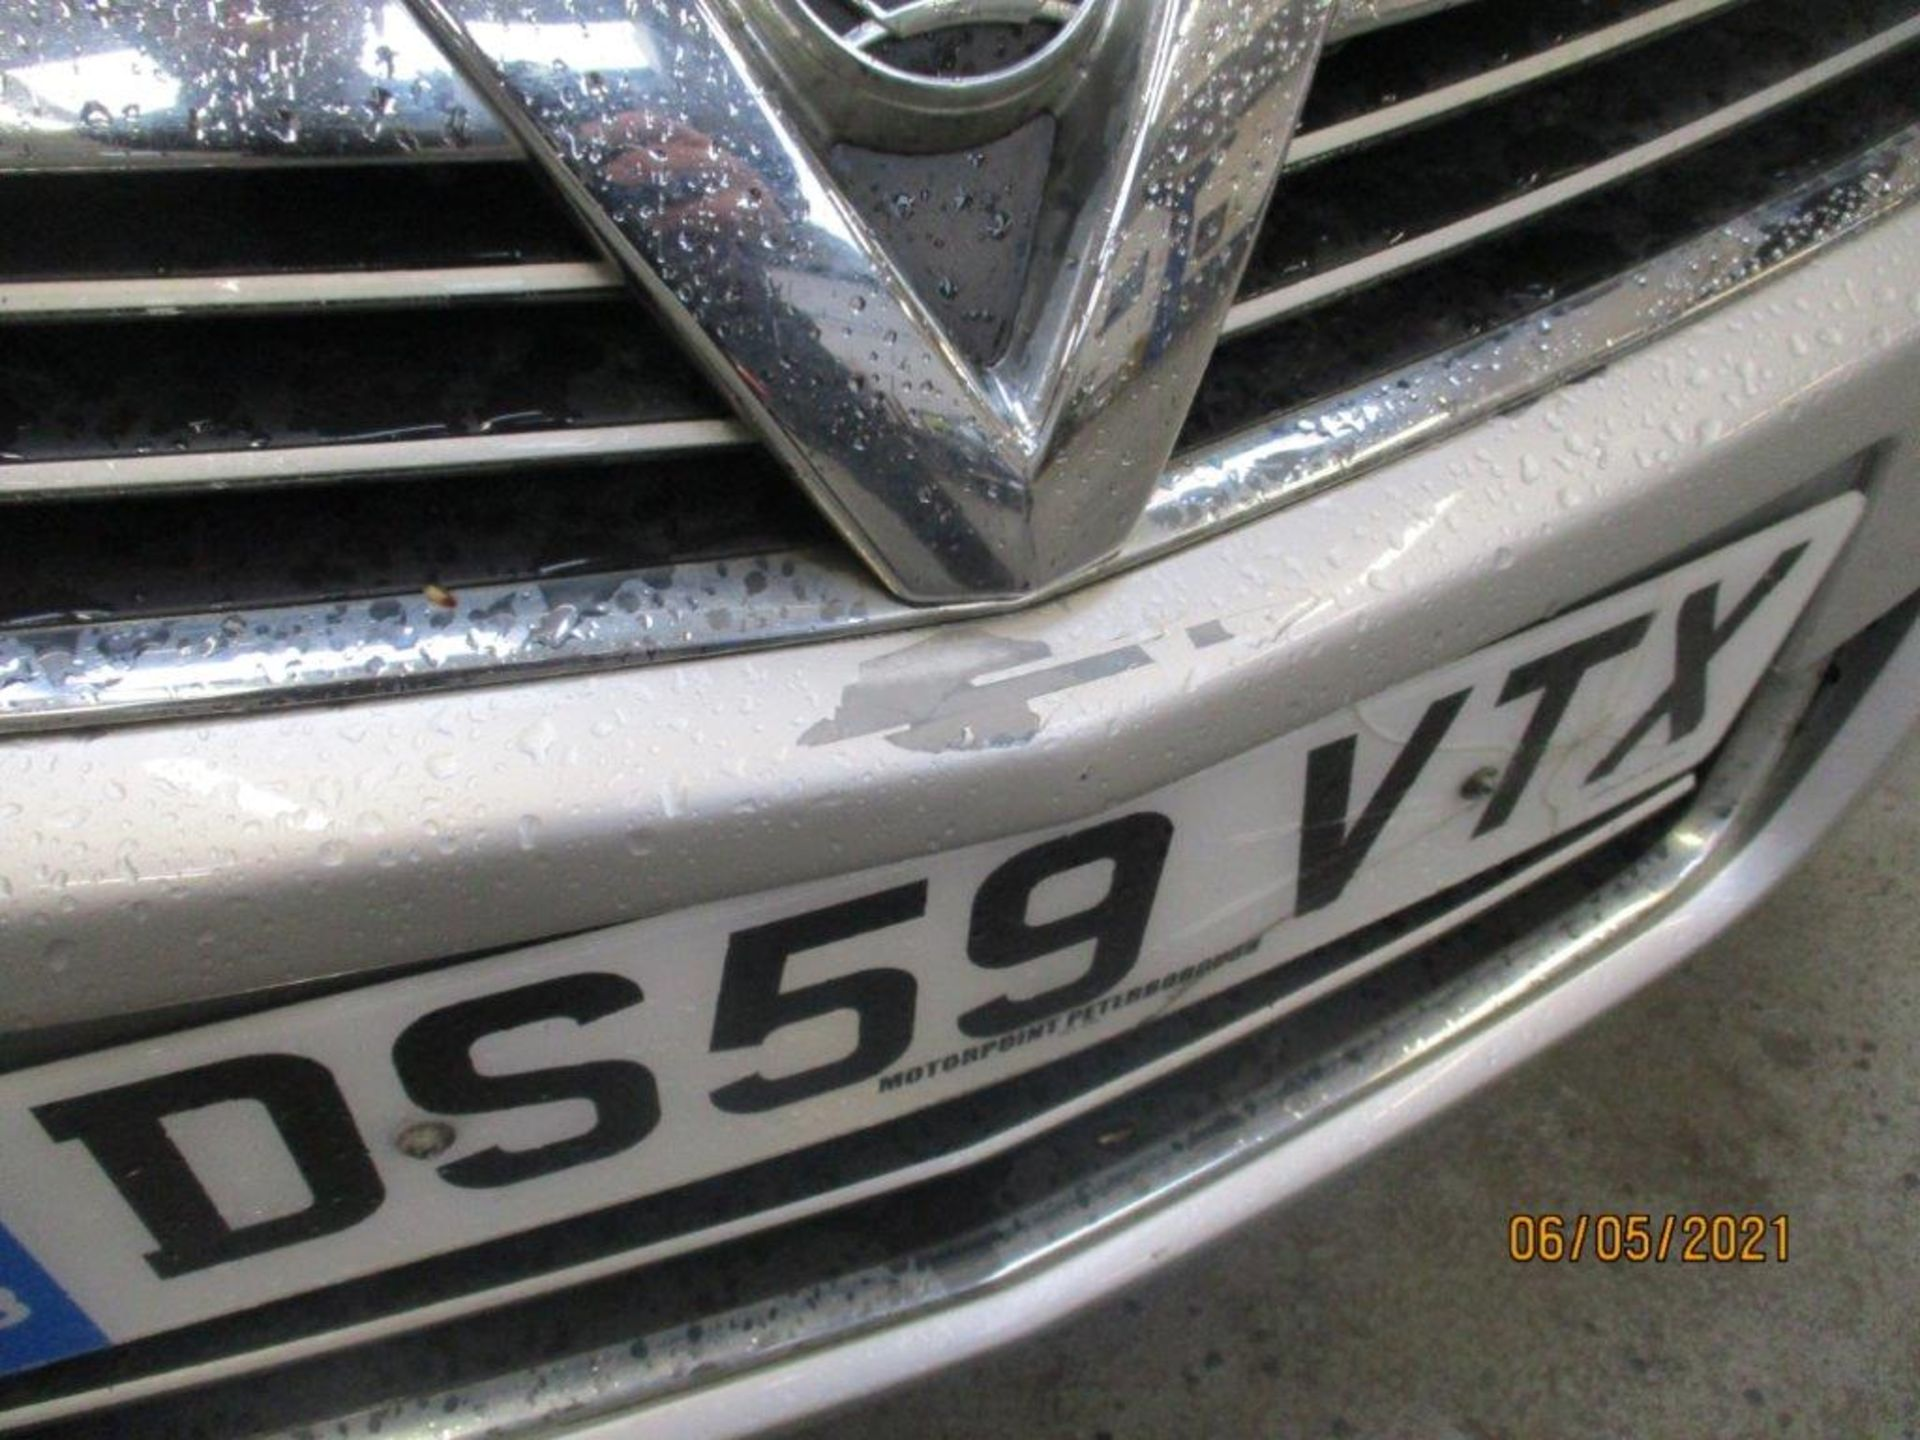 10 59 Vauxhall Astra Life - Image 12 of 14